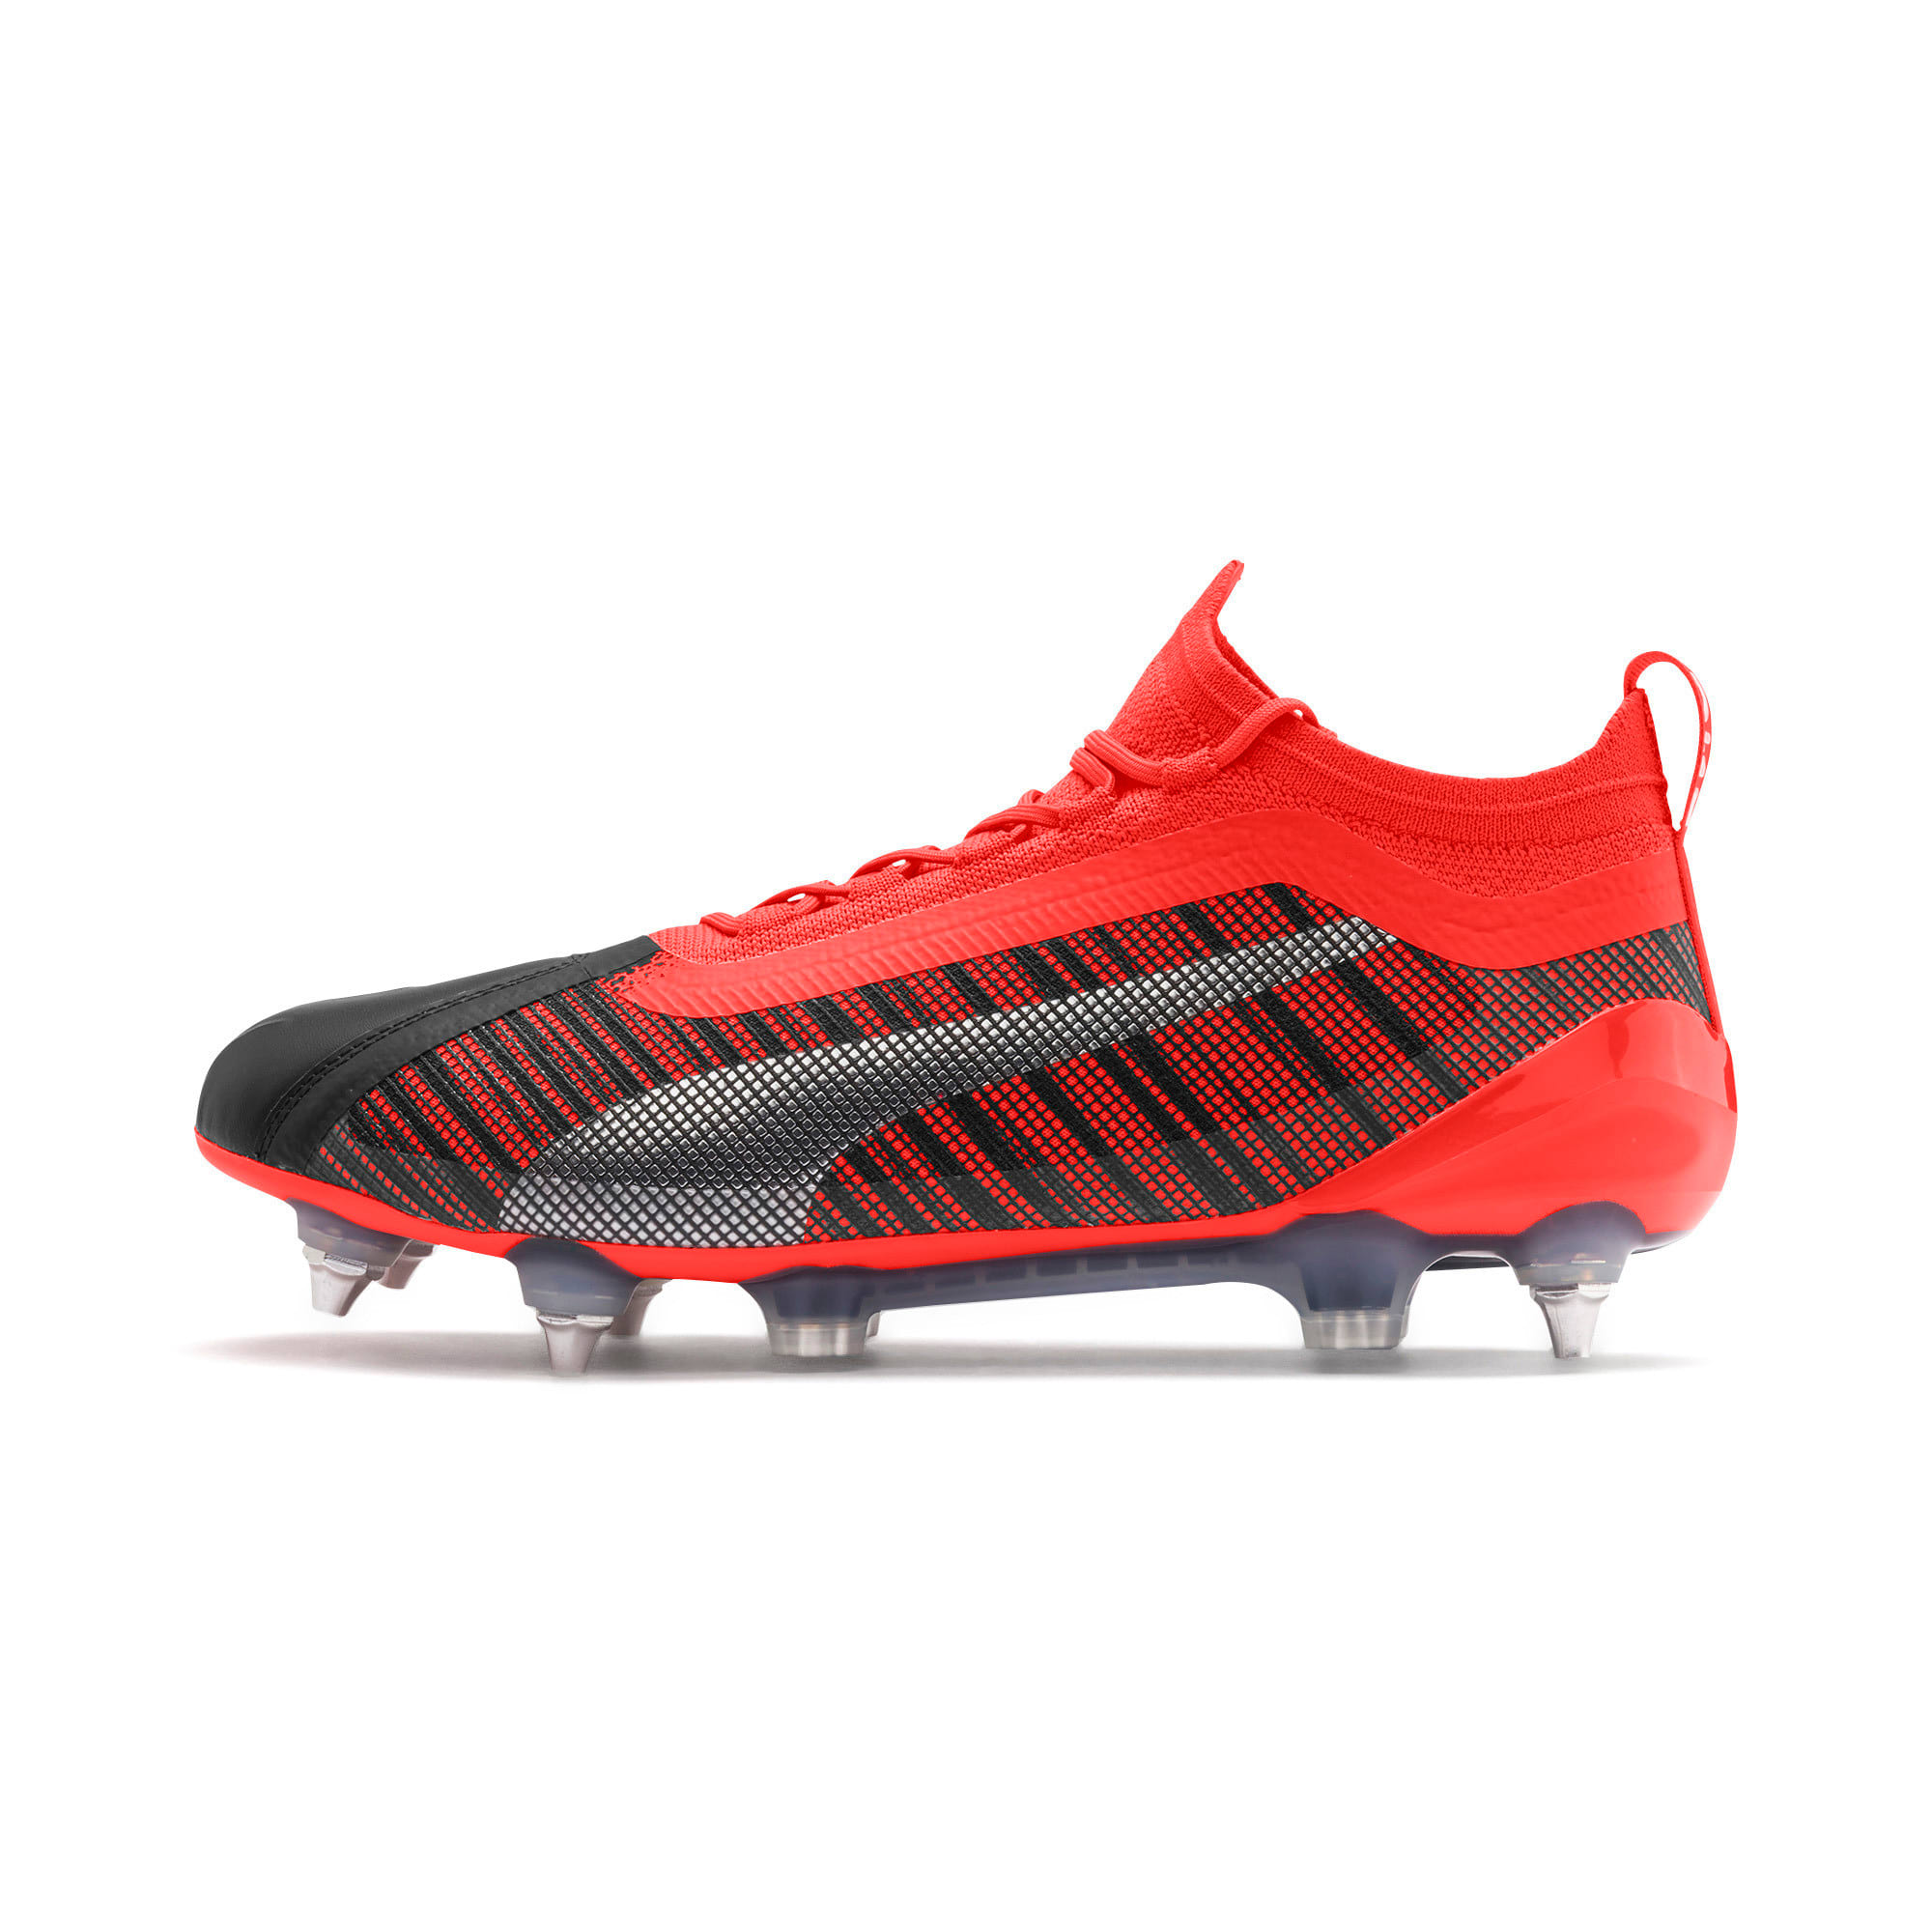 Thumbnail 1 of PUMA ONE 5.1 MxSG voetbalschoenen, Black-Nrgy Red-Aged Silver, medium